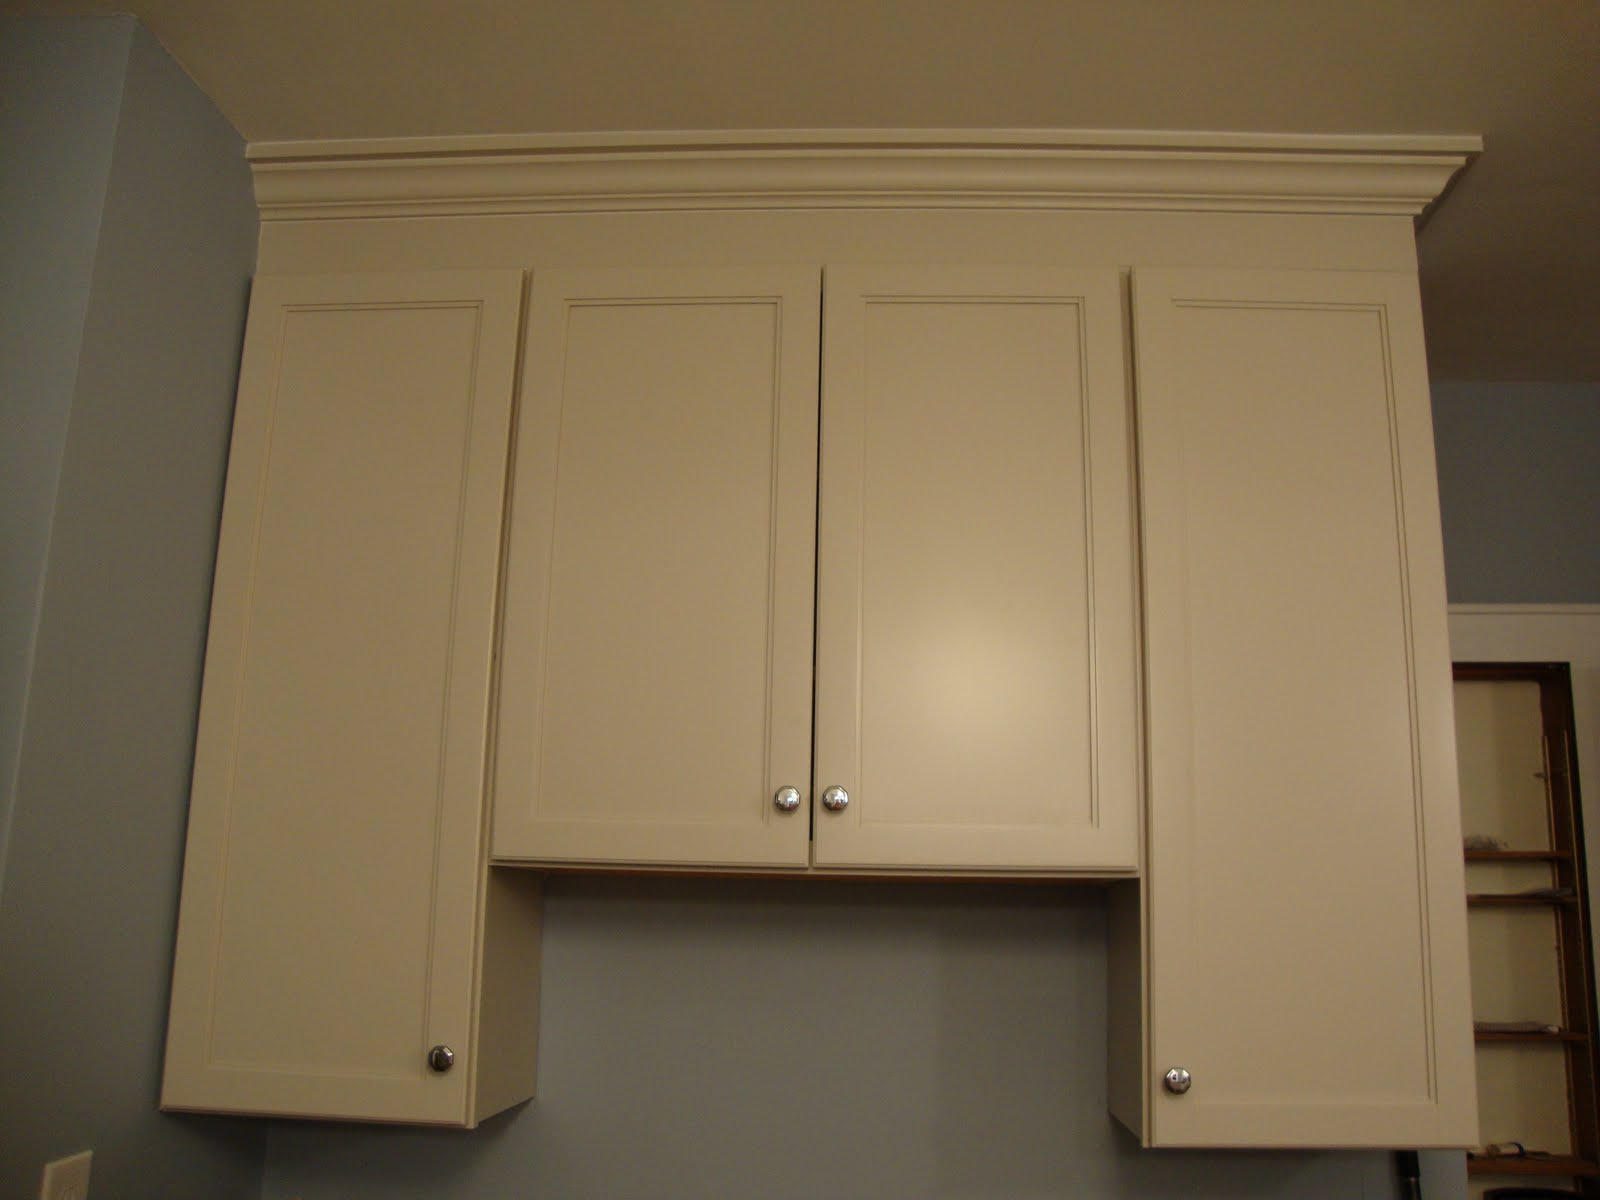 Wrap Around Kitchen Cabinets Jk Homestead Its All In The Details